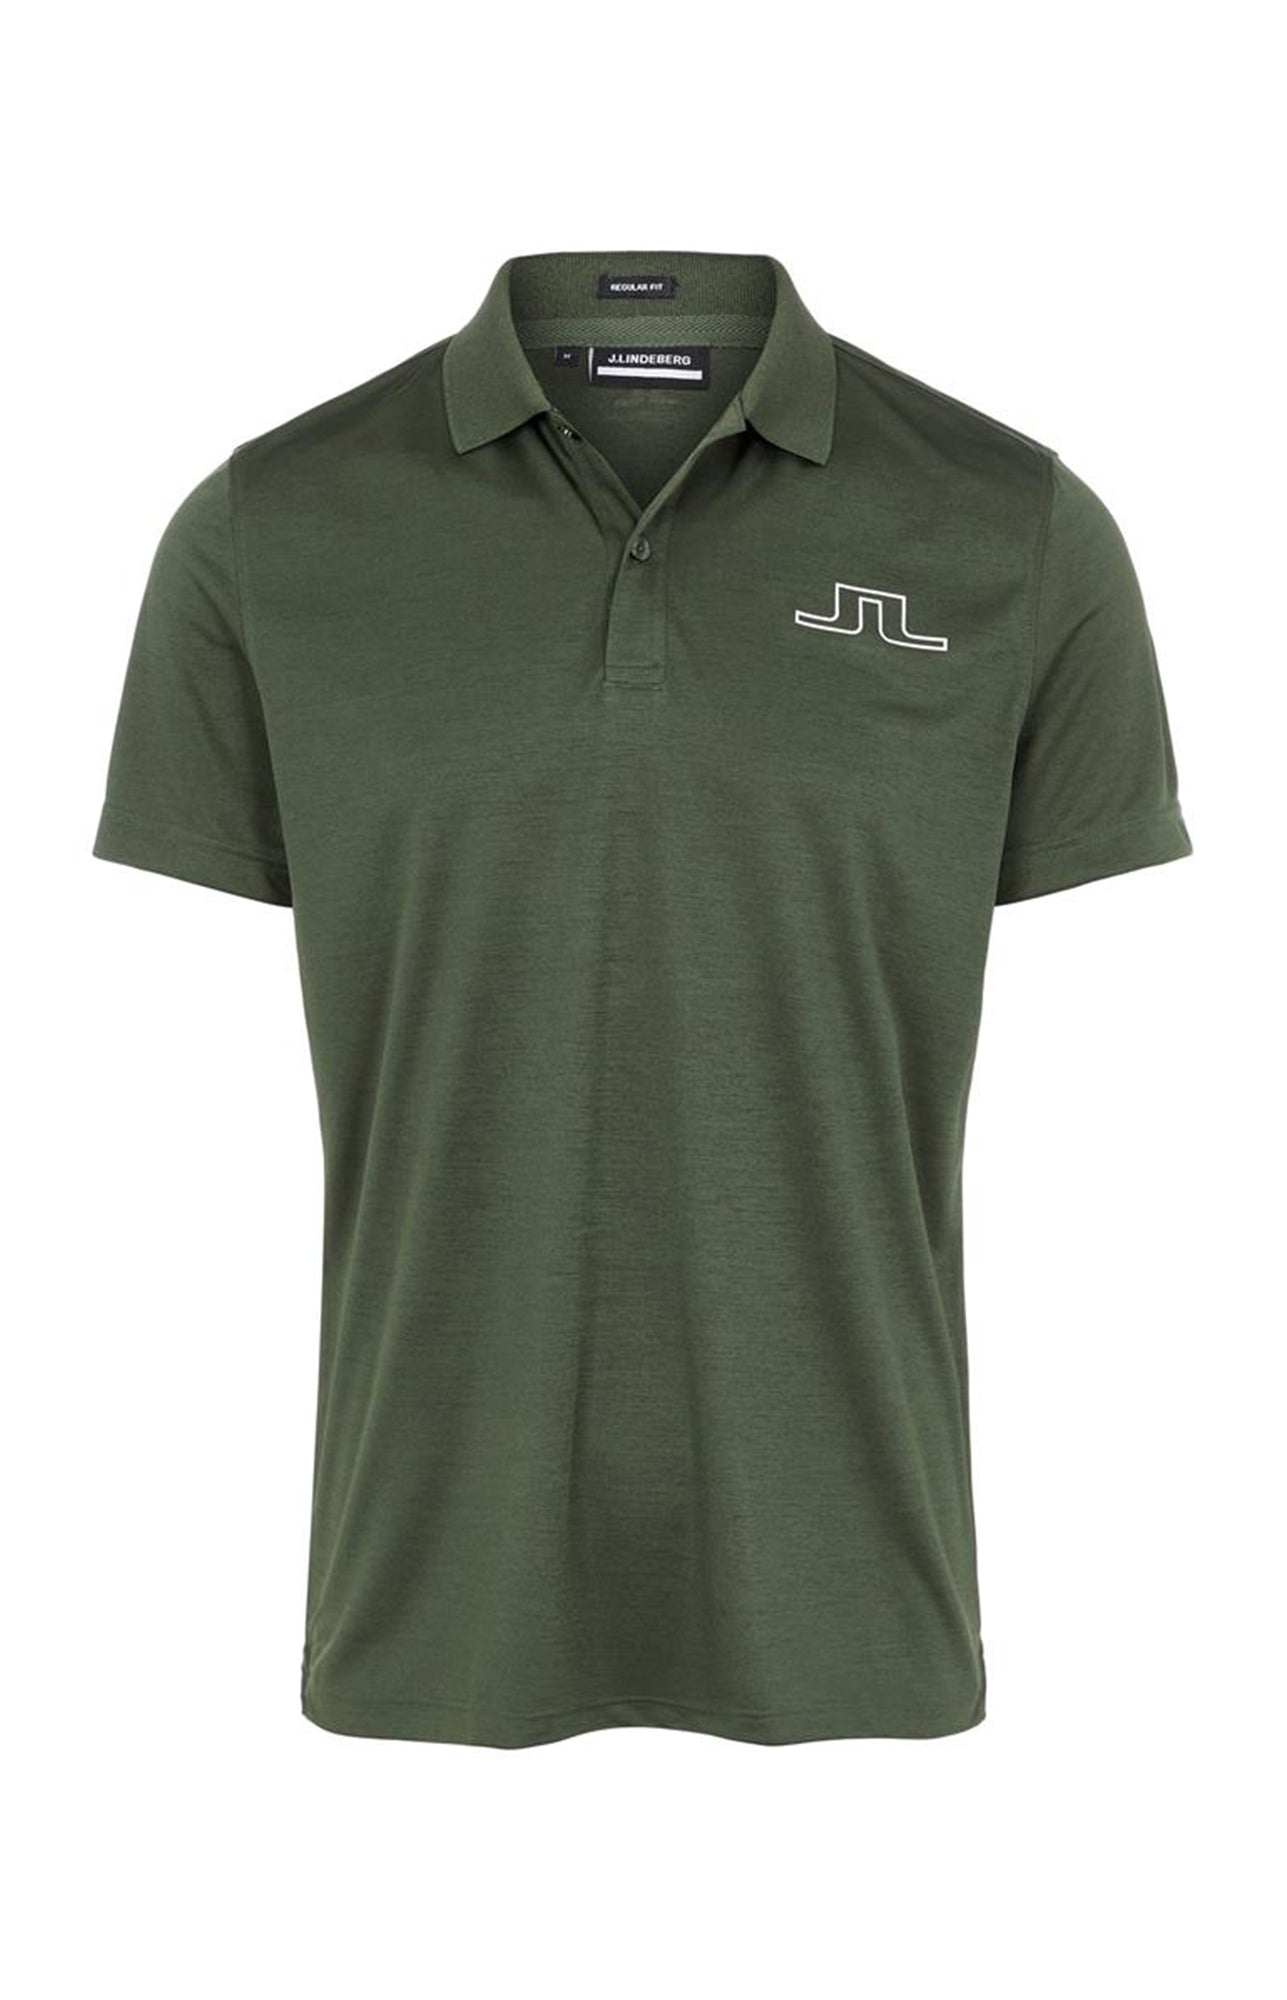 제이린드버그 브릿지 레귤러 핏 폴로 J Lindeberg Bridge Regular Fit Golf Polo  (Thyme Green Melange)